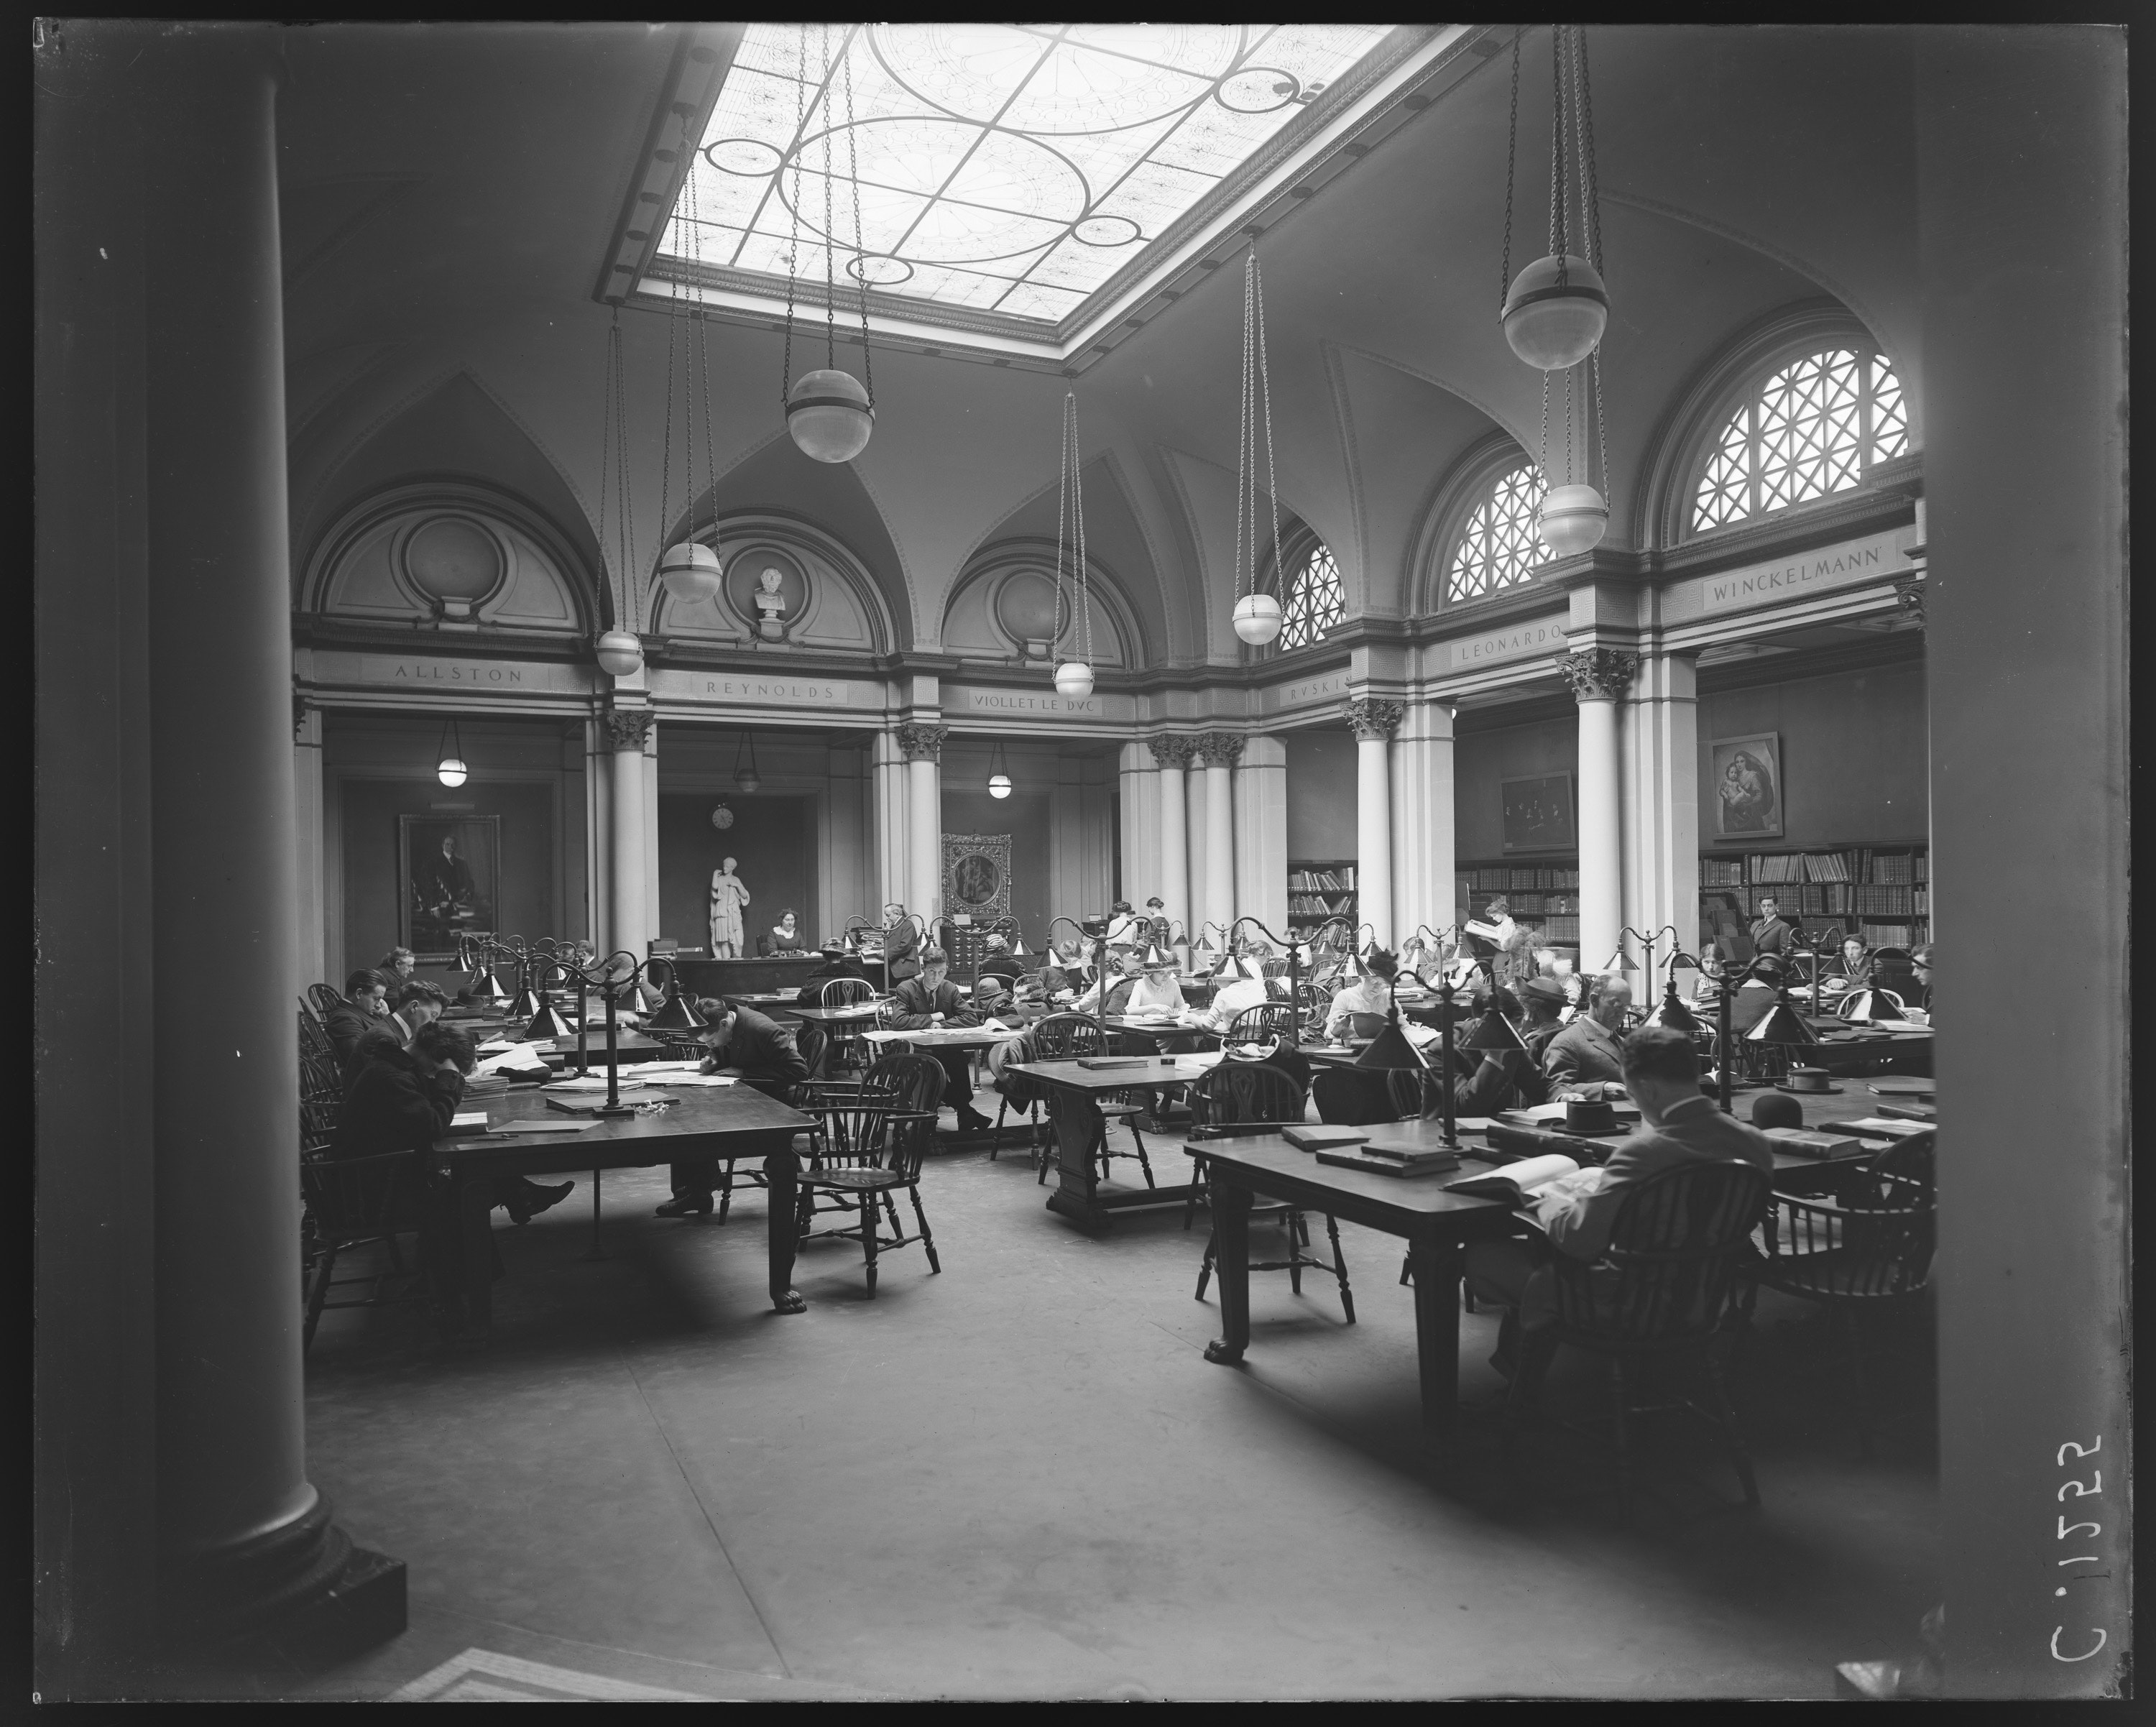 Old photo of patrons in the Ryerson and Burnham libraries